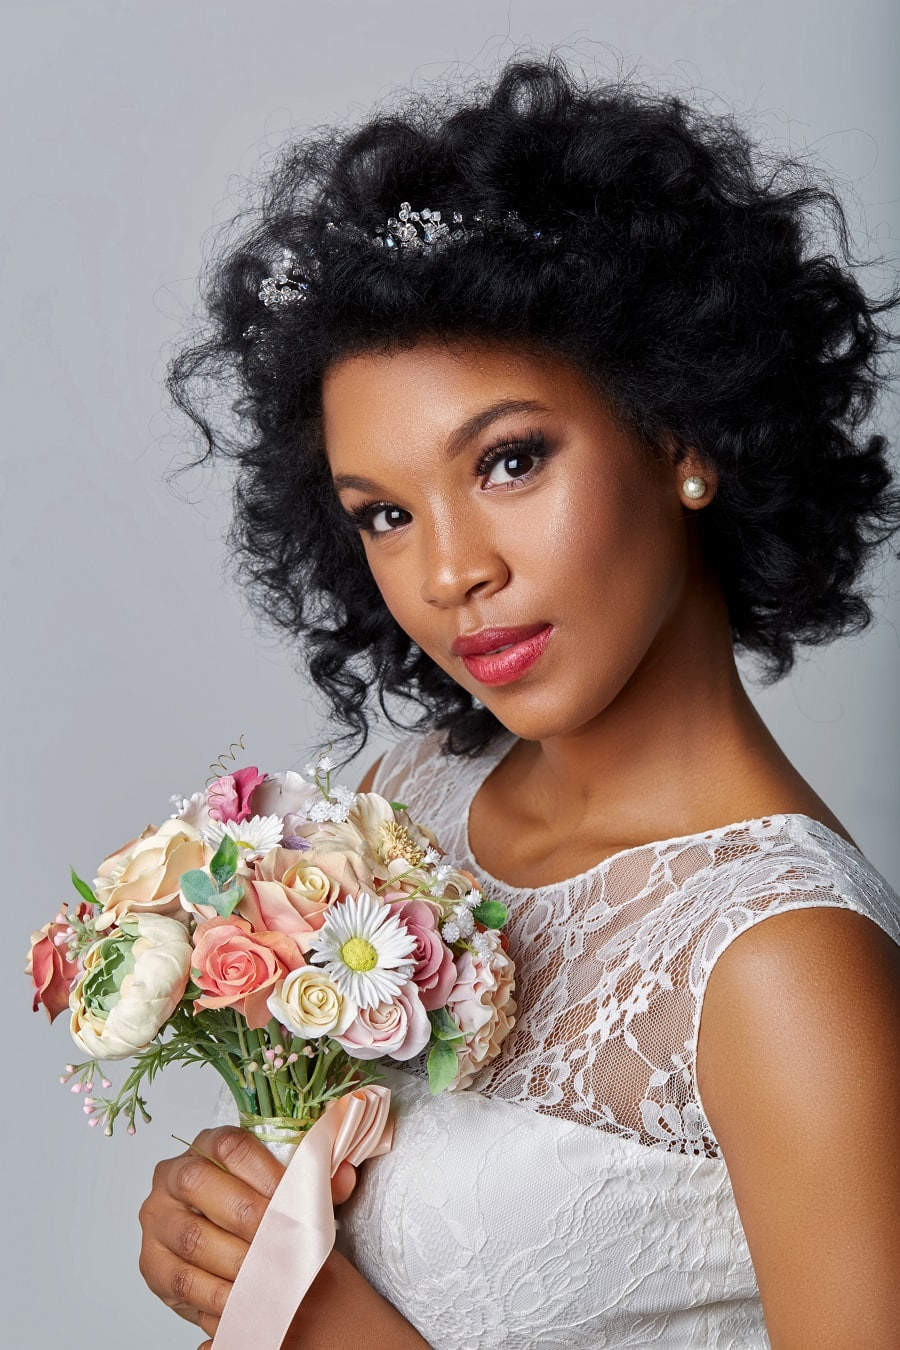 black woman with curly wedding hairstyle